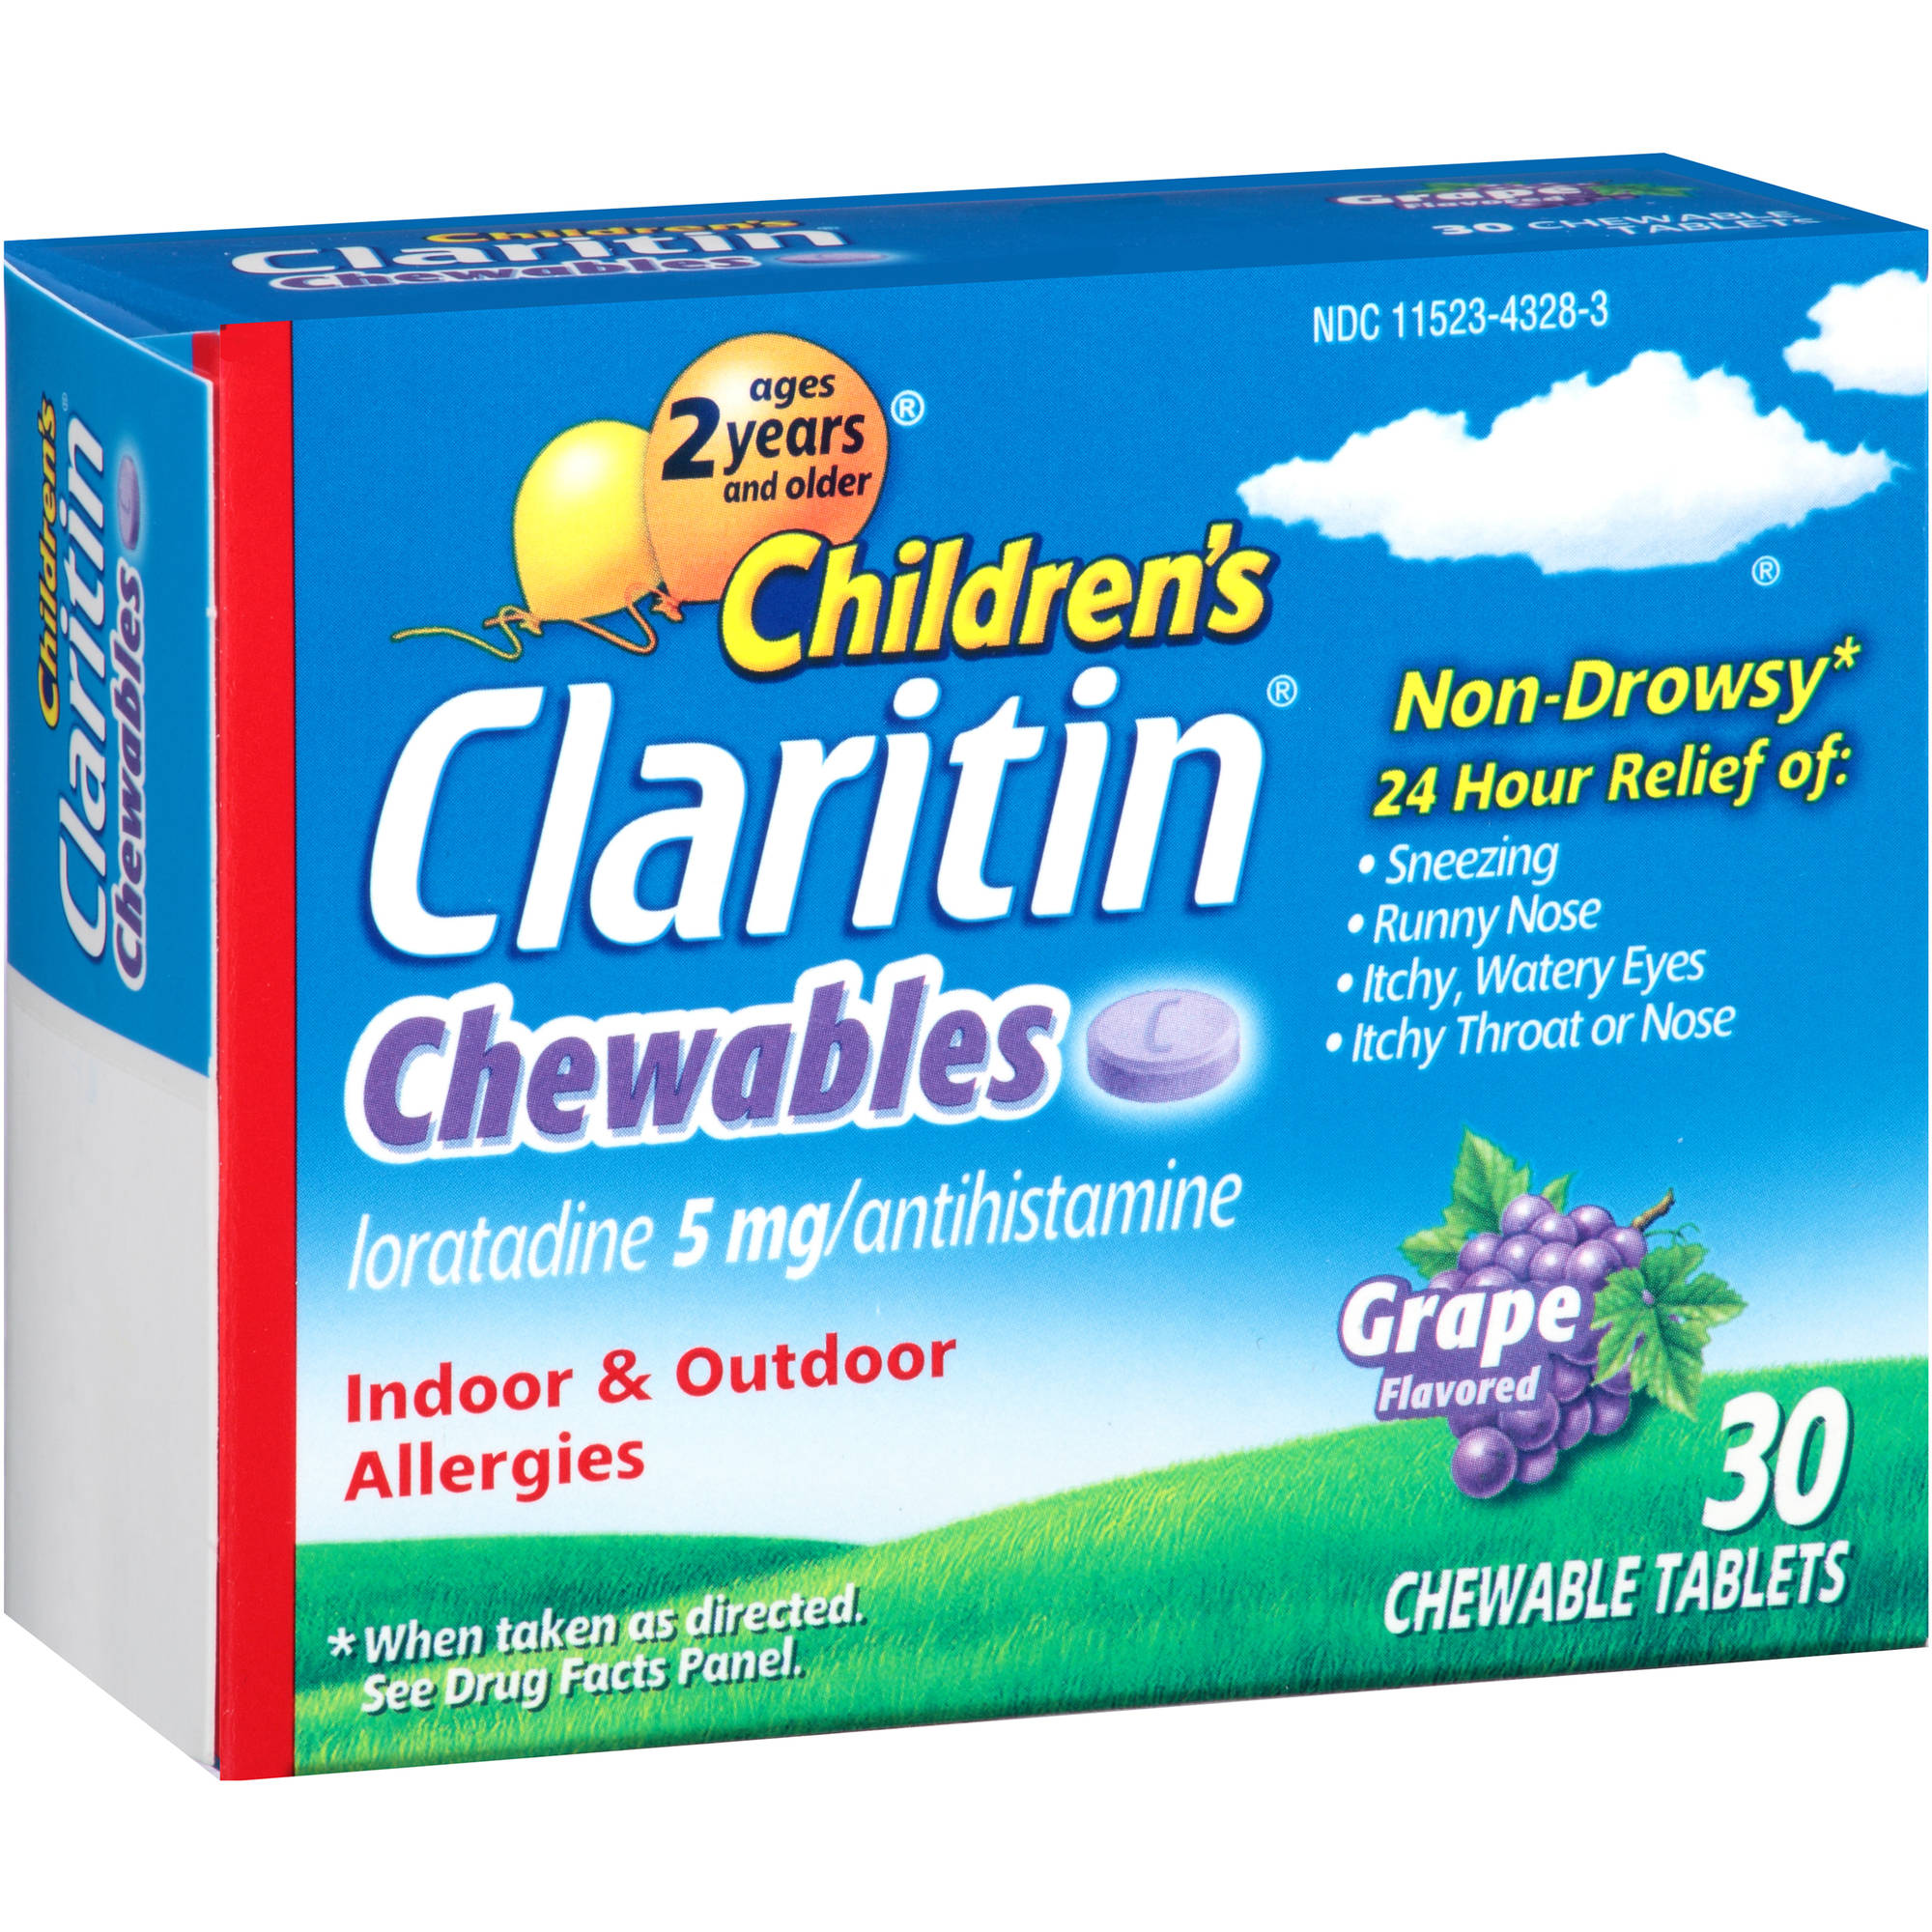 Children's Claritin Allergy Grape Flavored Chewable Tablets, 30 count